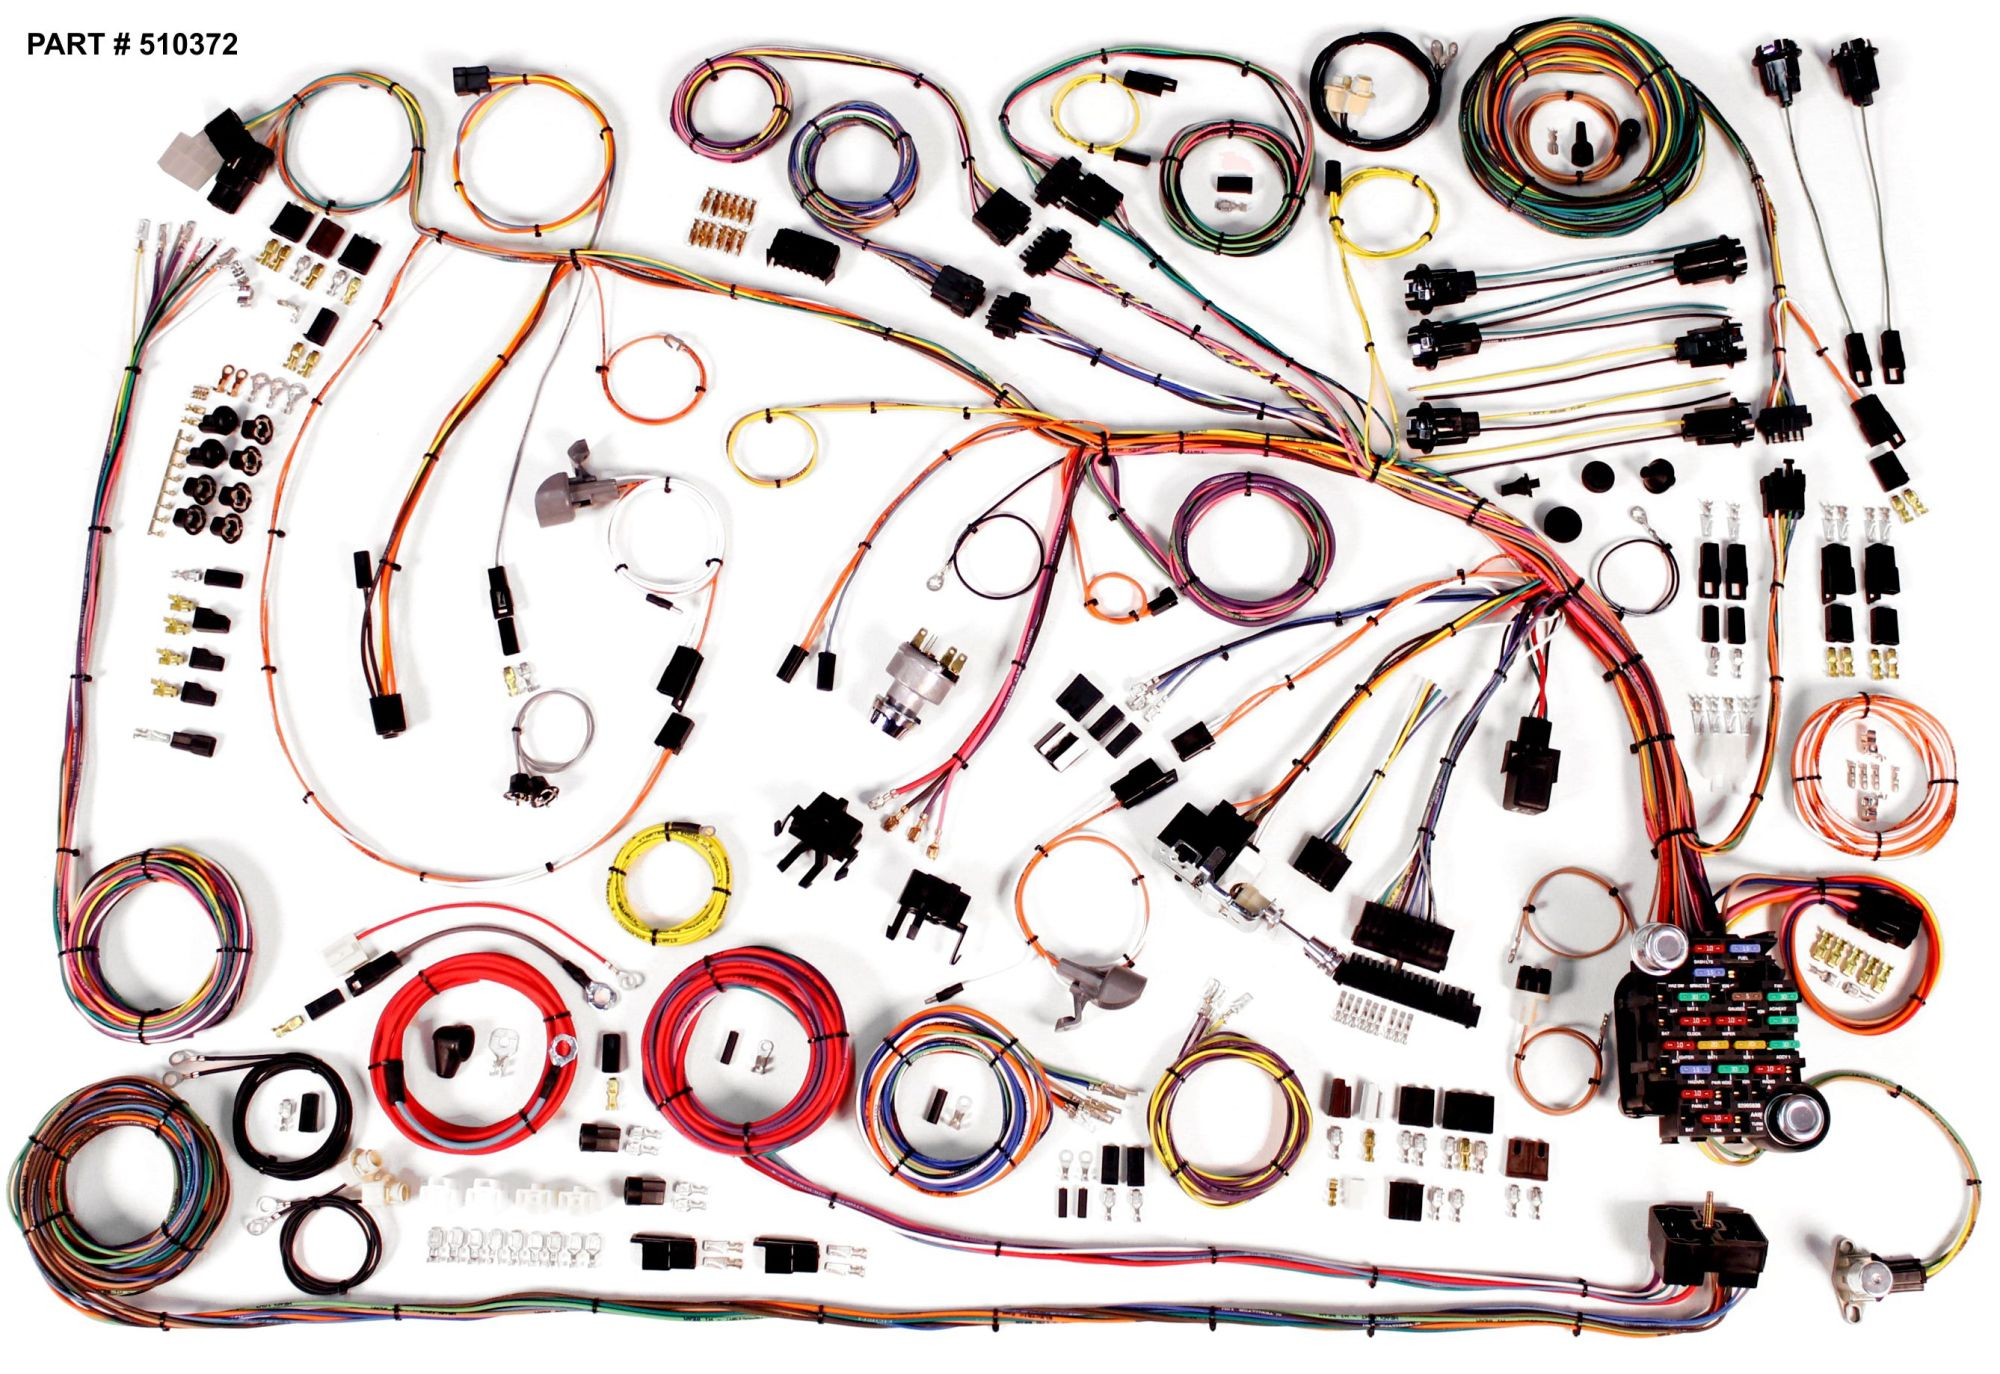 hight resolution of 1966 1968 chevrolet impala restomod wiring system 68 impala wiring harness 1966 68 impala restomod wiring